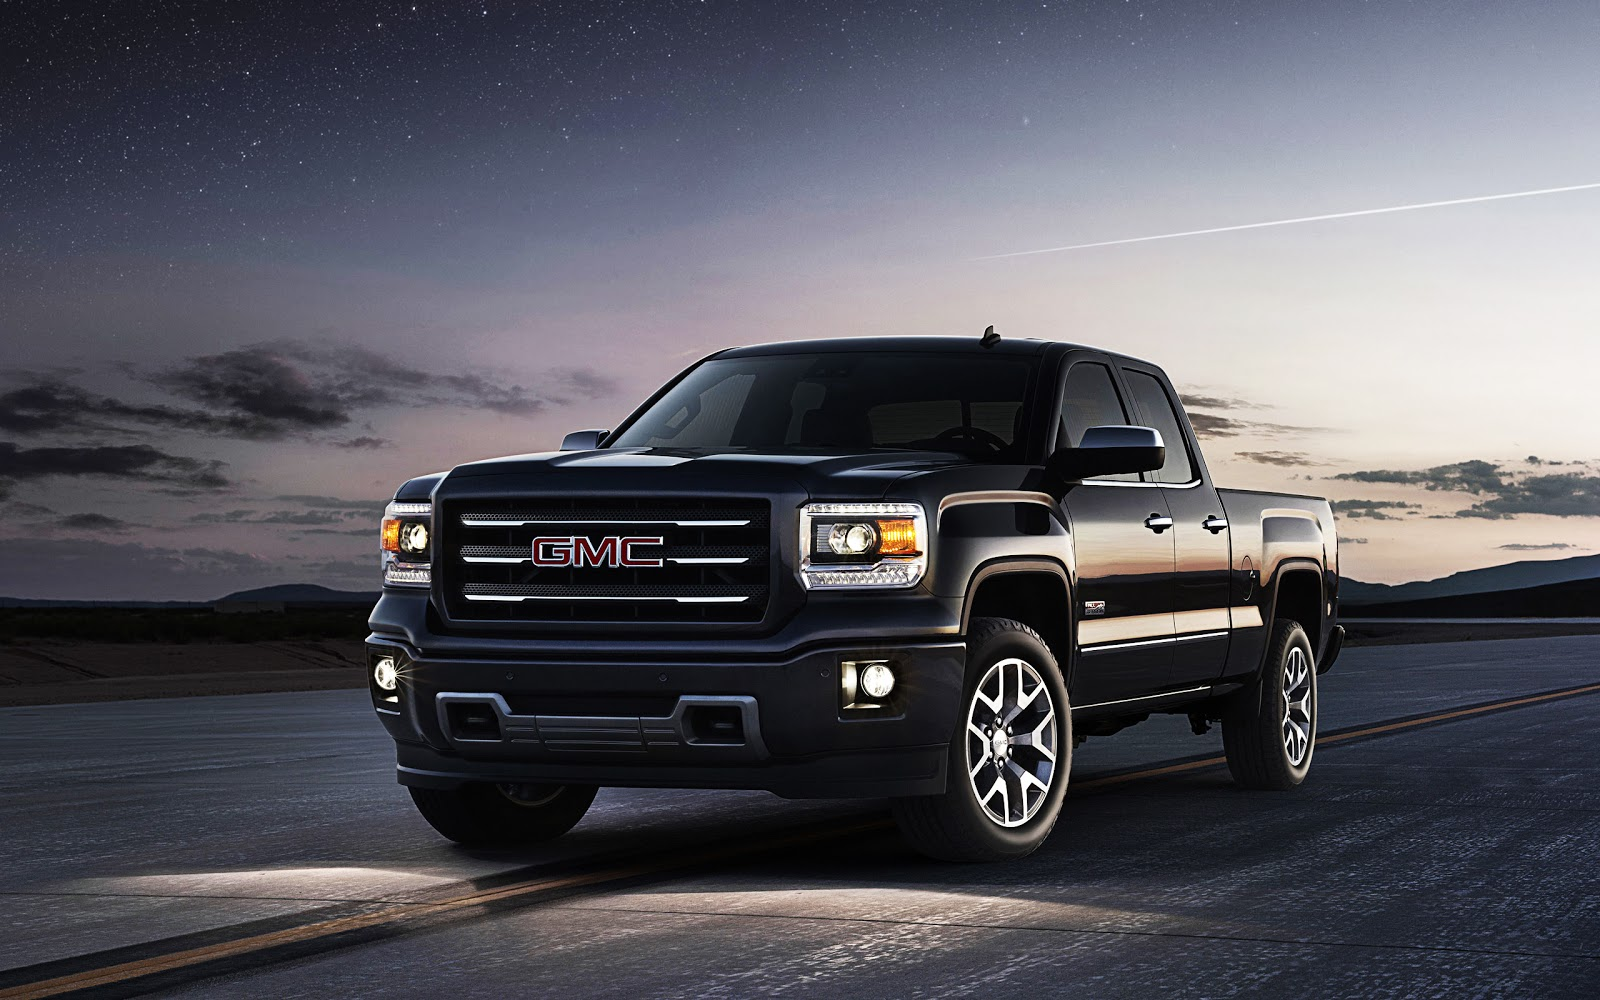 Gmc hd photo - 3